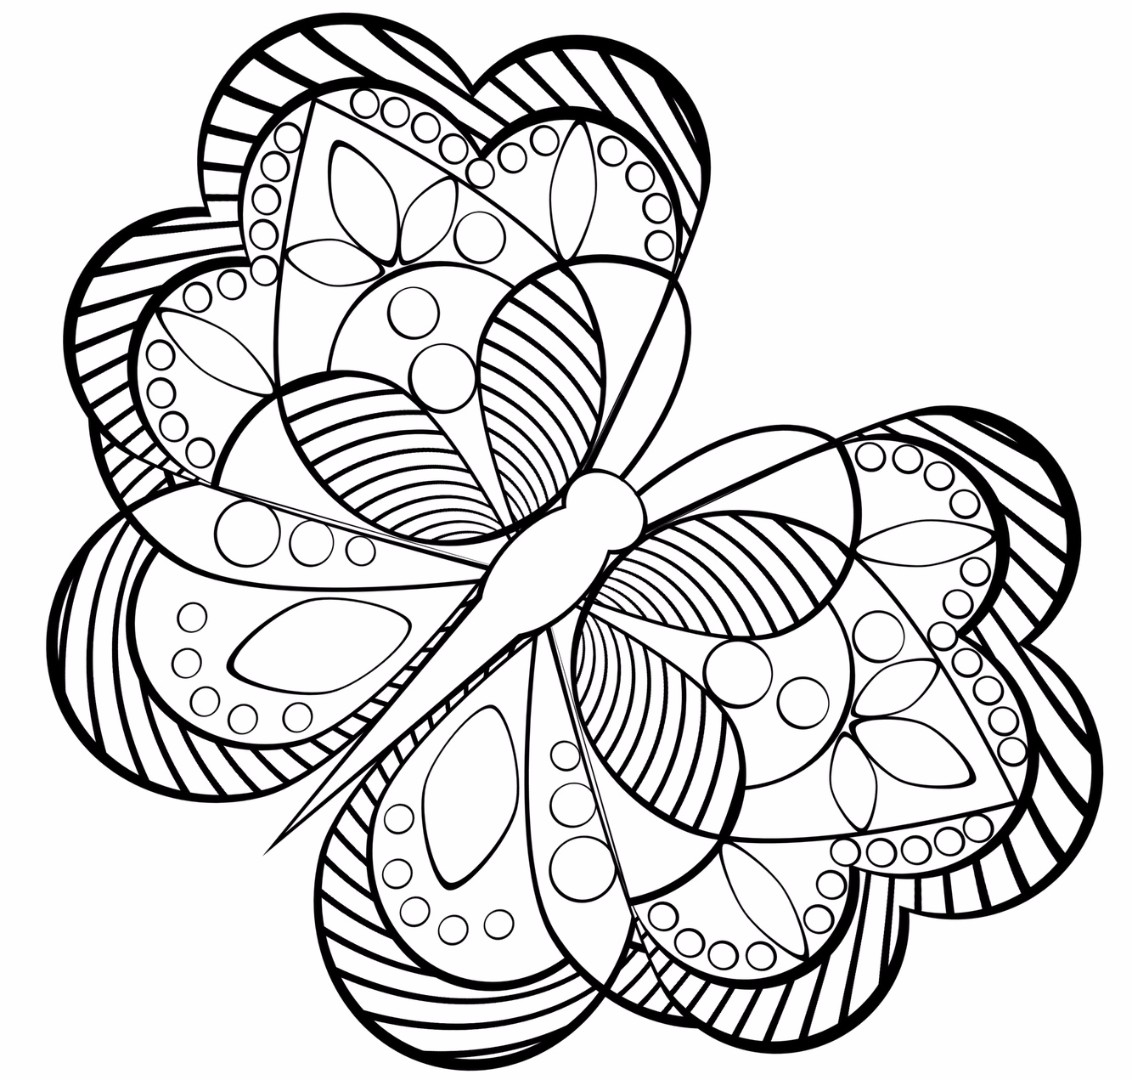 Coloring Pages Anti Stress For Children on adult coloring pages for anxiety